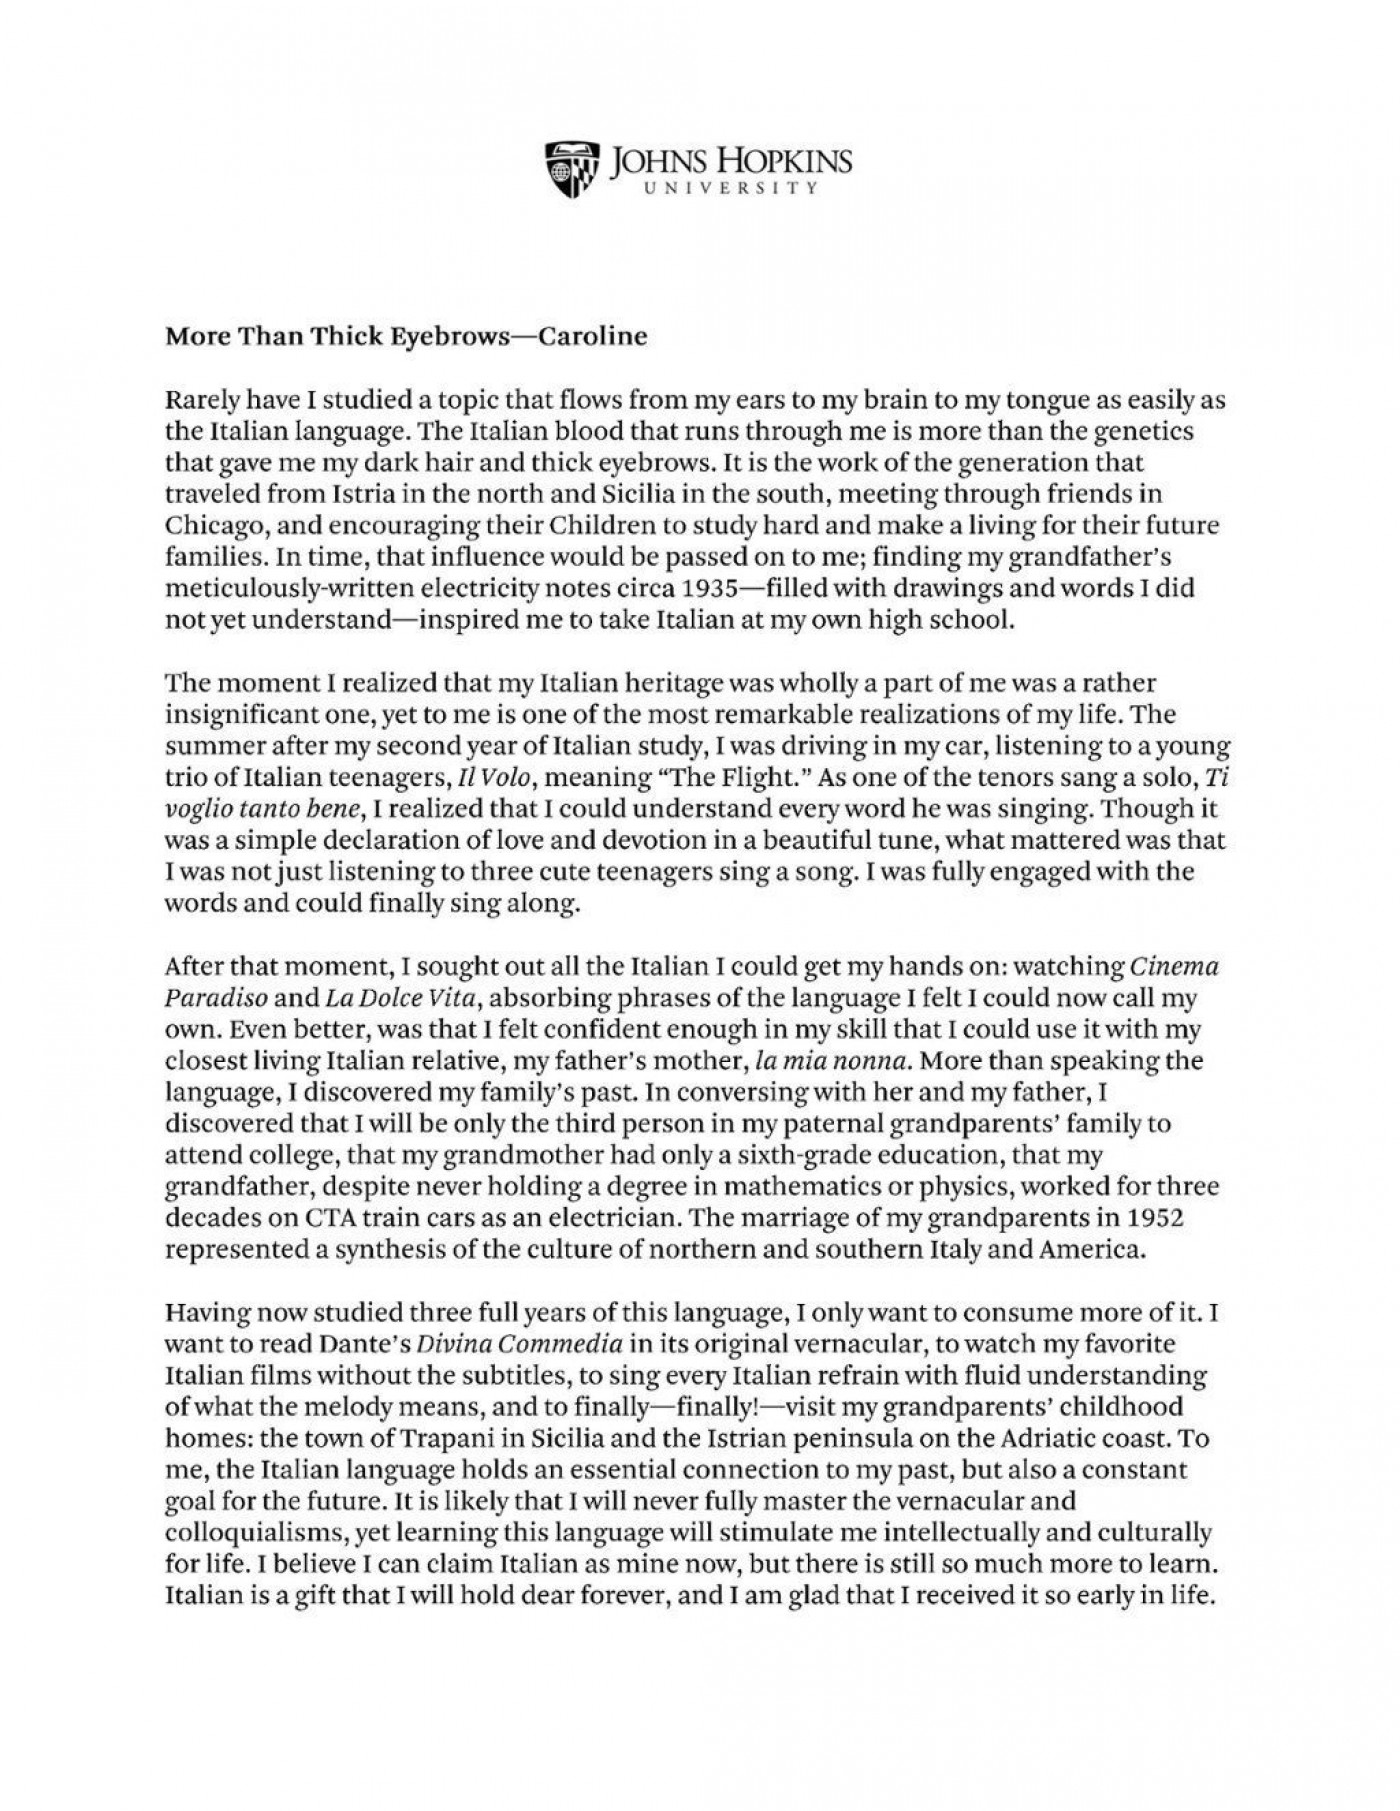 009 Excellent College Application Essay Outline Example Photo  Admission Format Heading Narrative Template1400